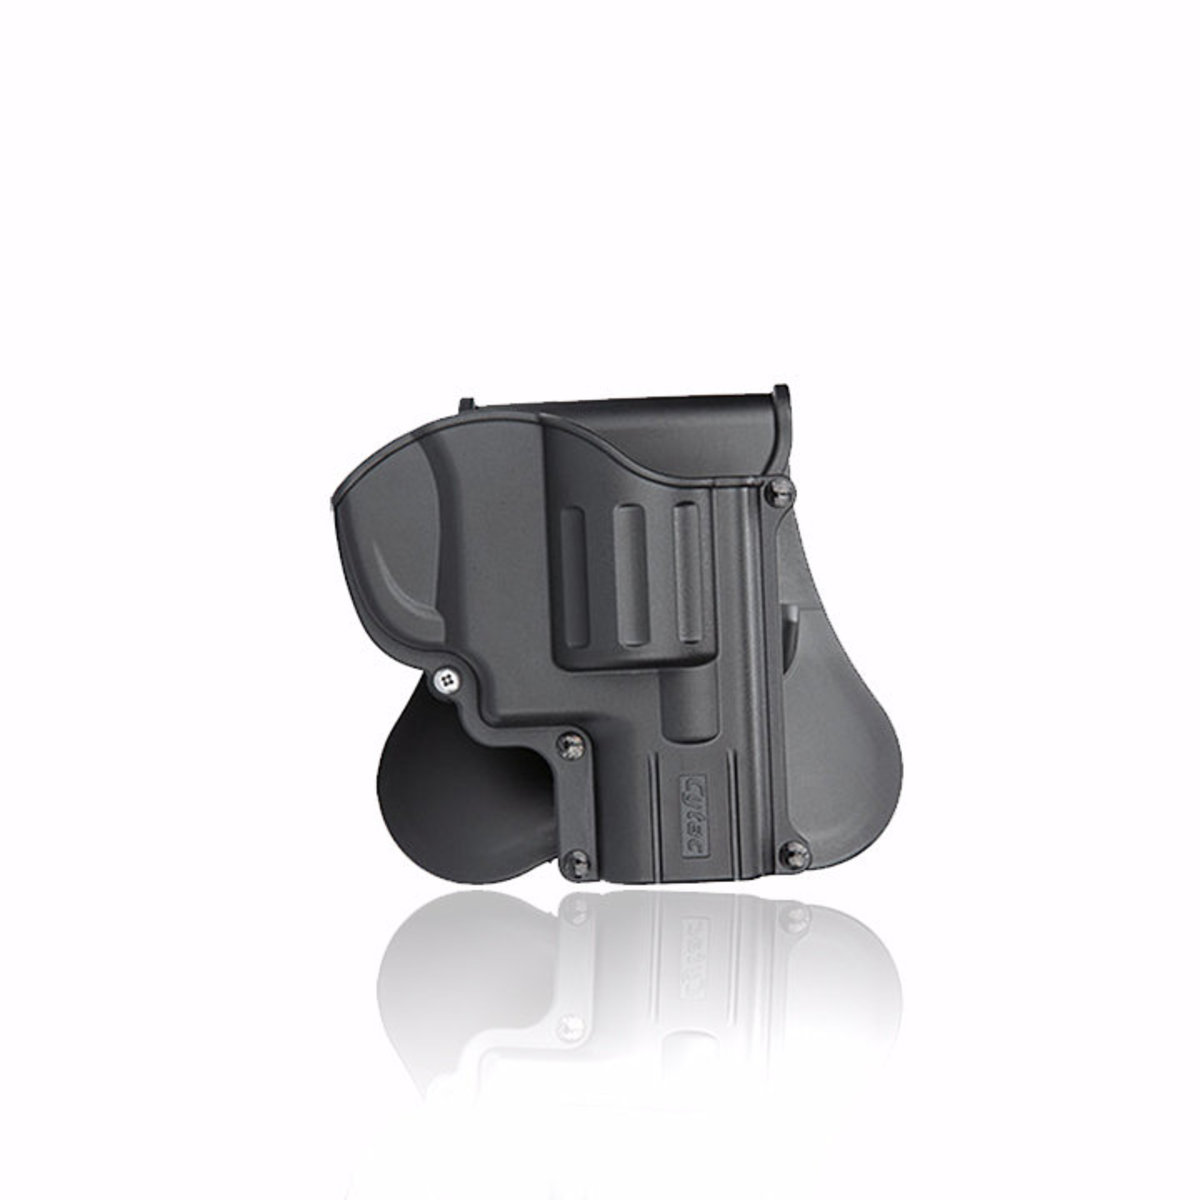 View larger image of Cytac OWB Holster - Fits Taurus 85 Revolver / S&W J Frame / S&W M60